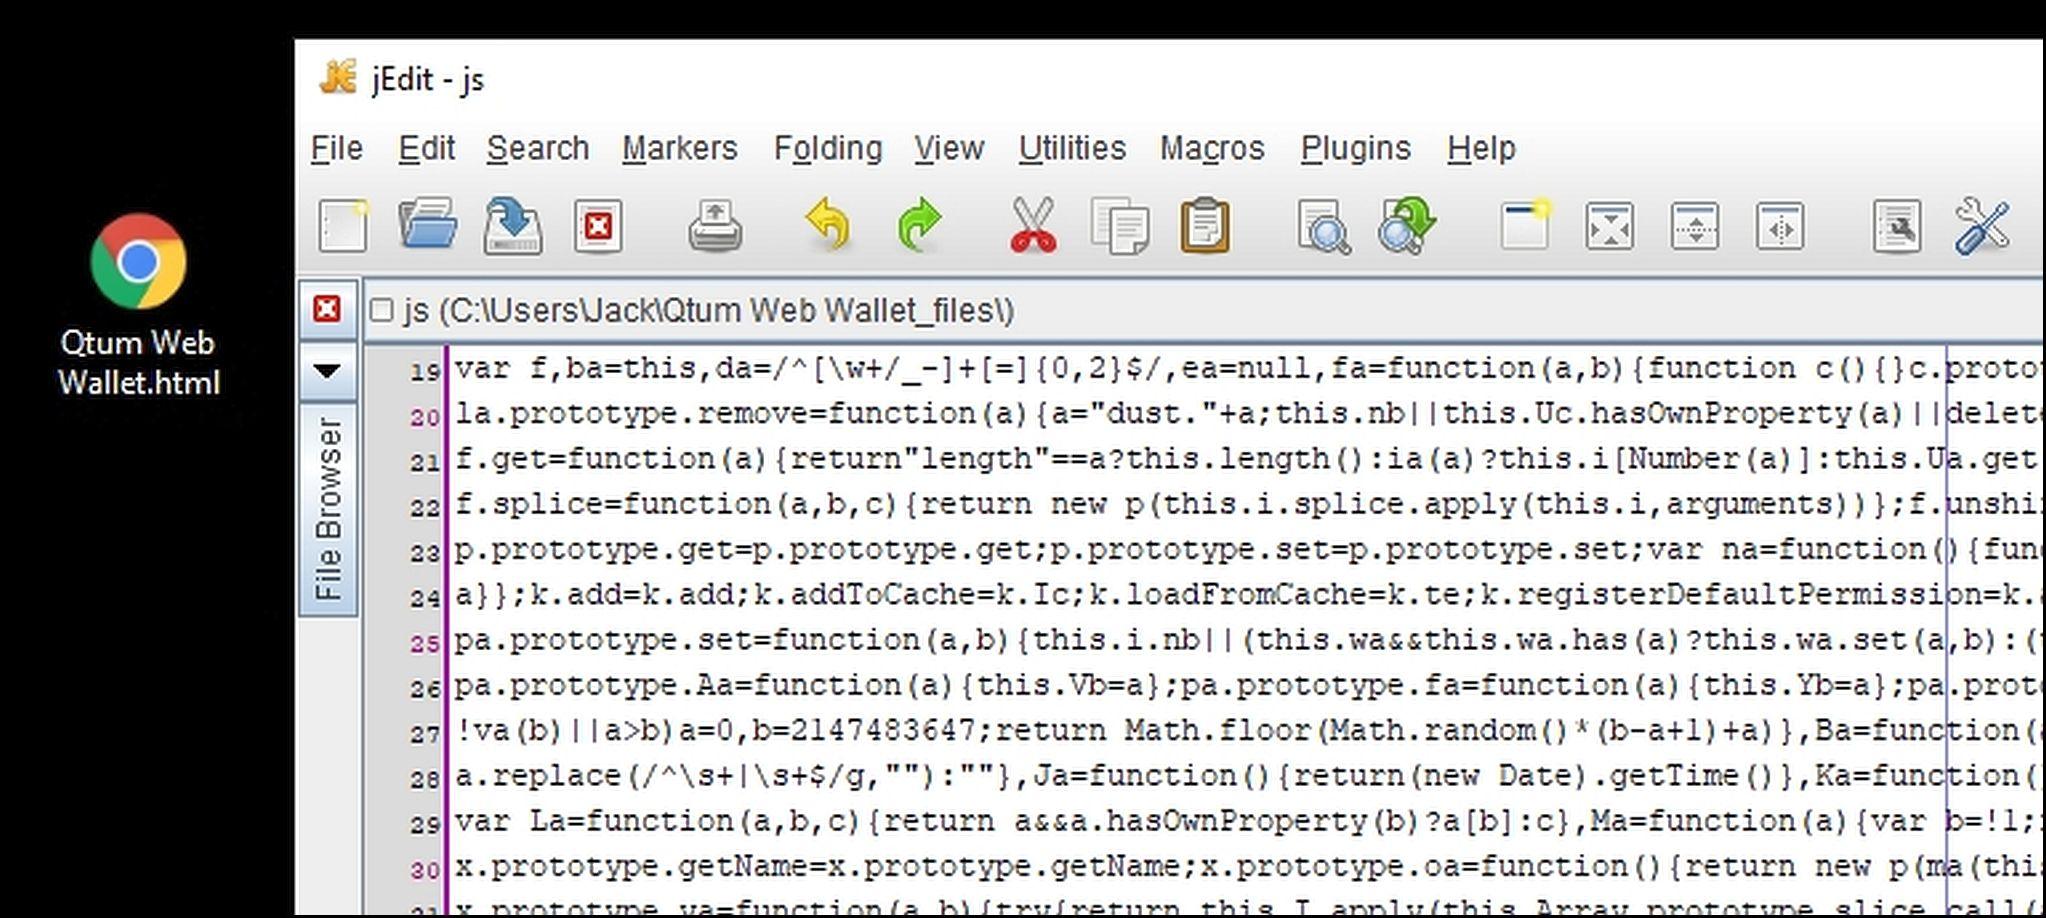 1 The Web Wallet HTML File